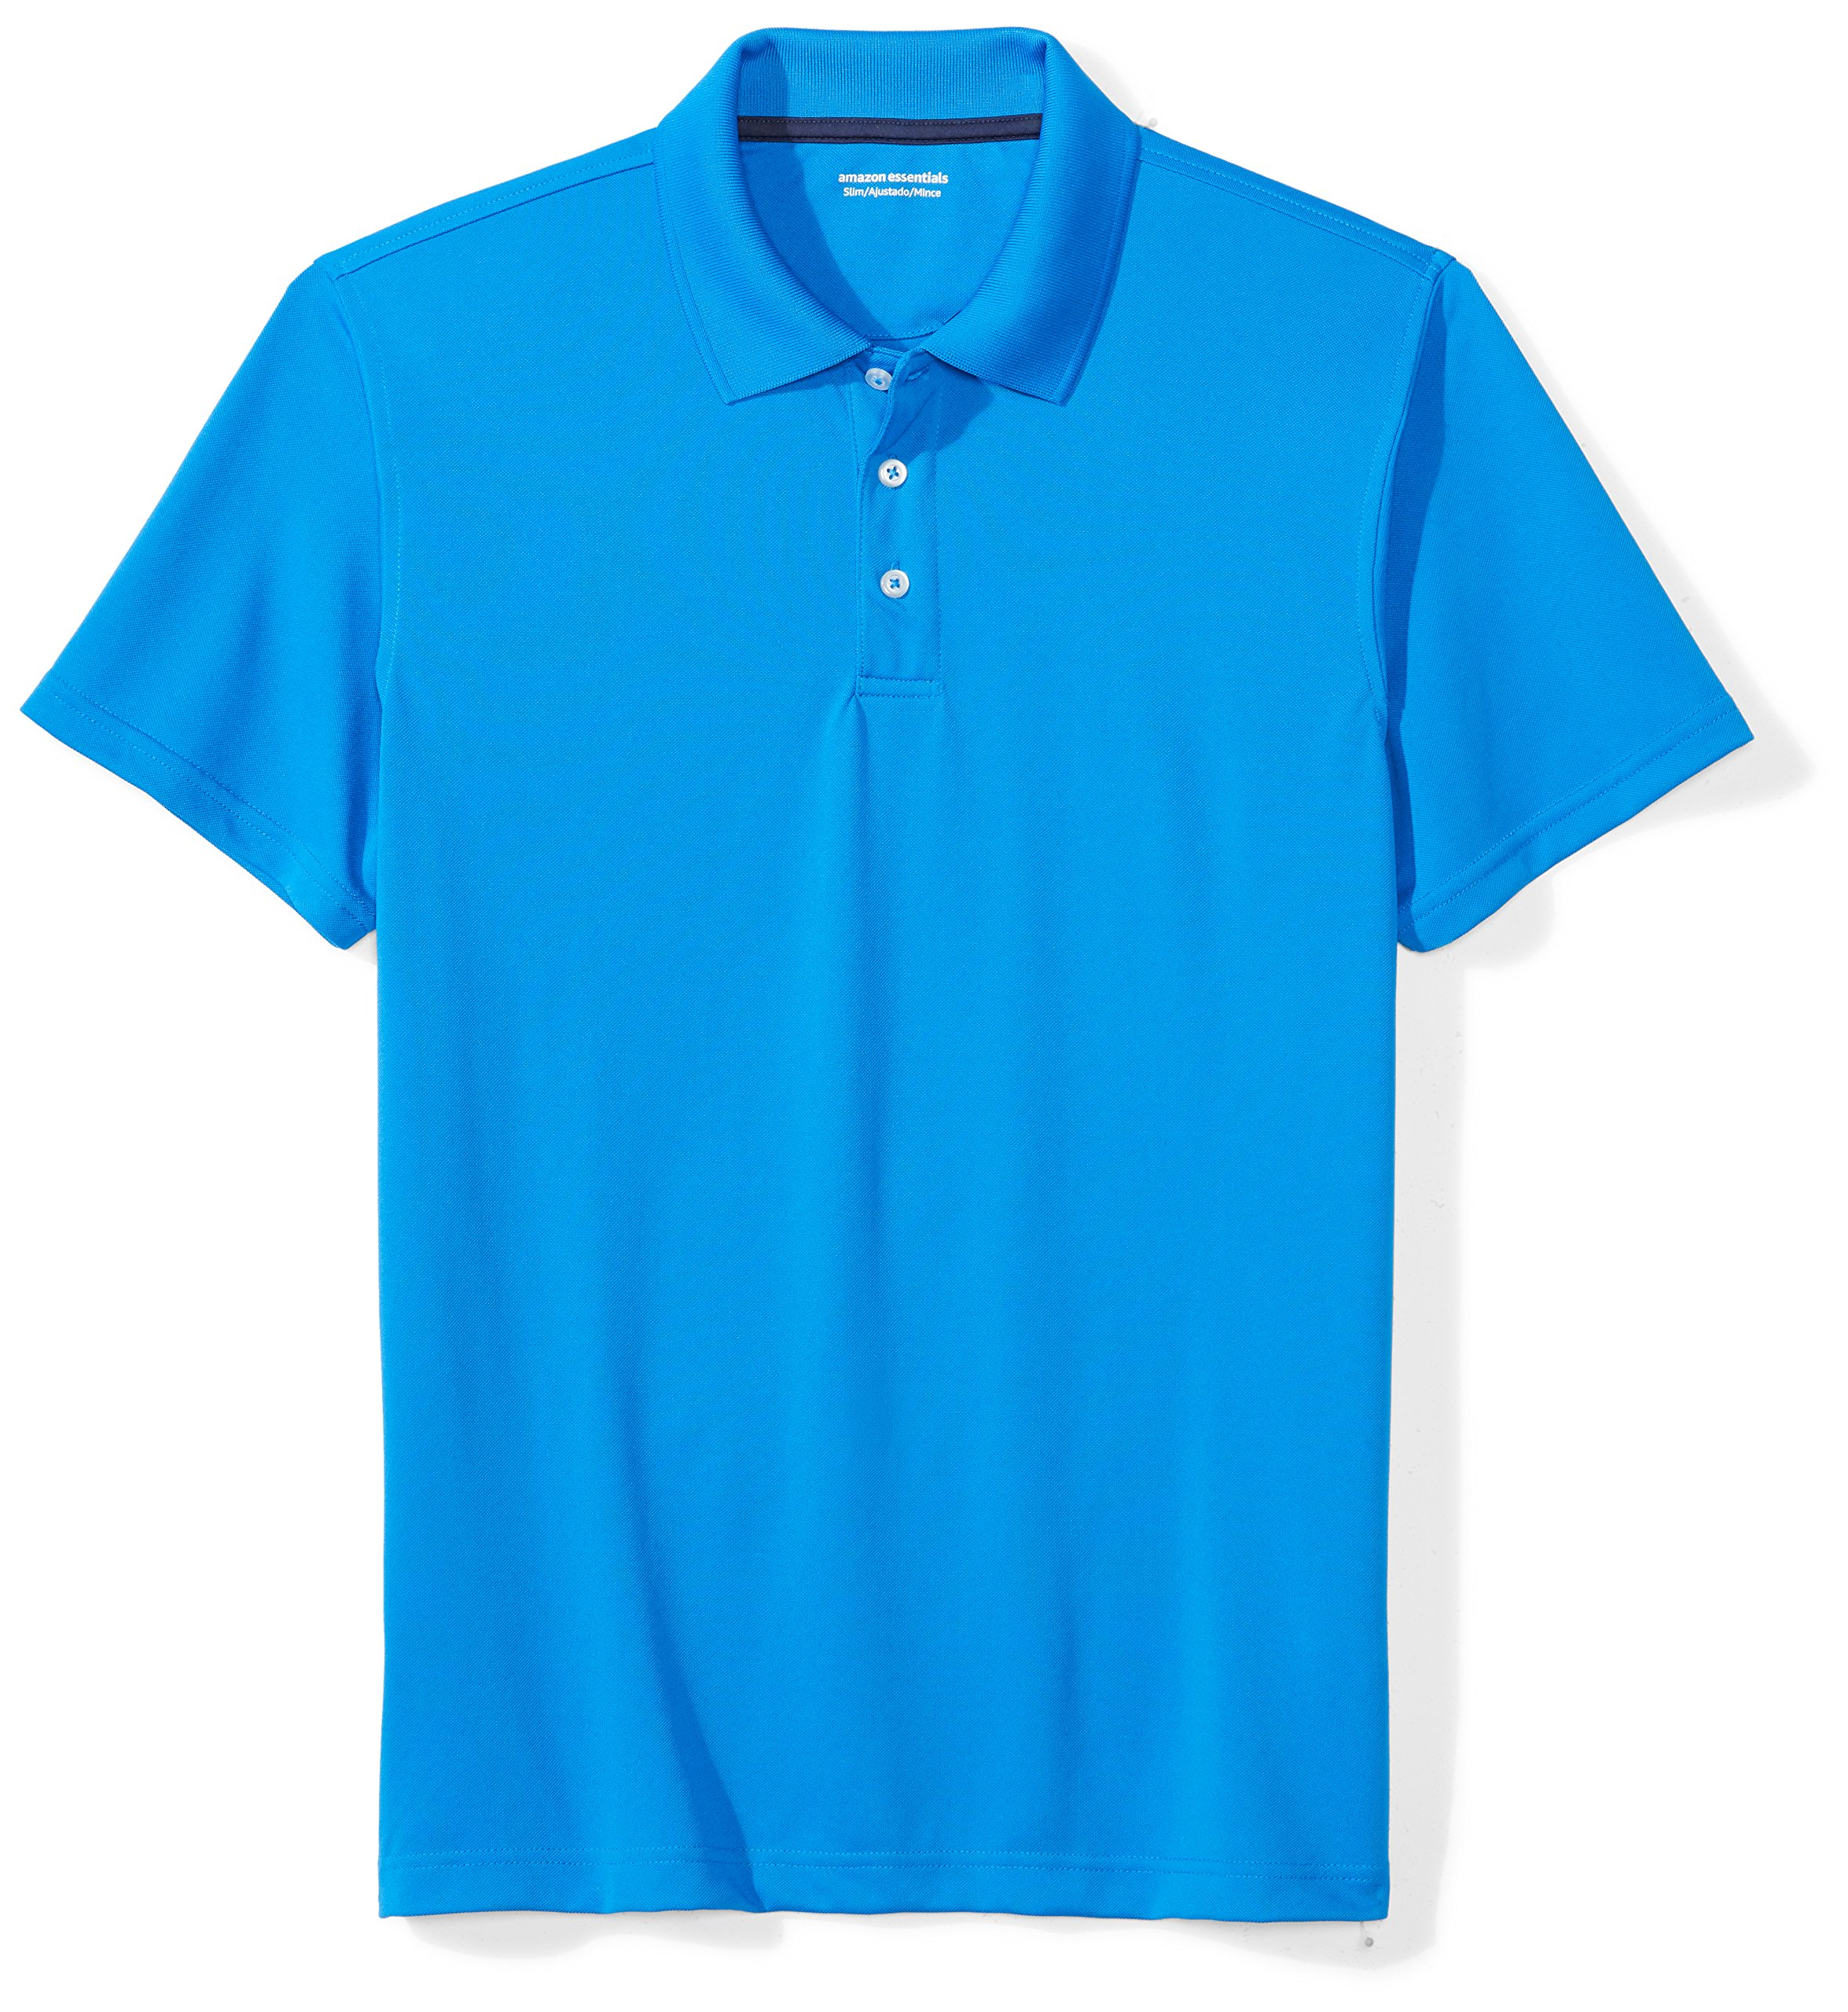 Amazon Essentials Men's Slim-Fit Quick-Dry Golf Polo Shirt, Electric Blue, Small by Amazon Essentials